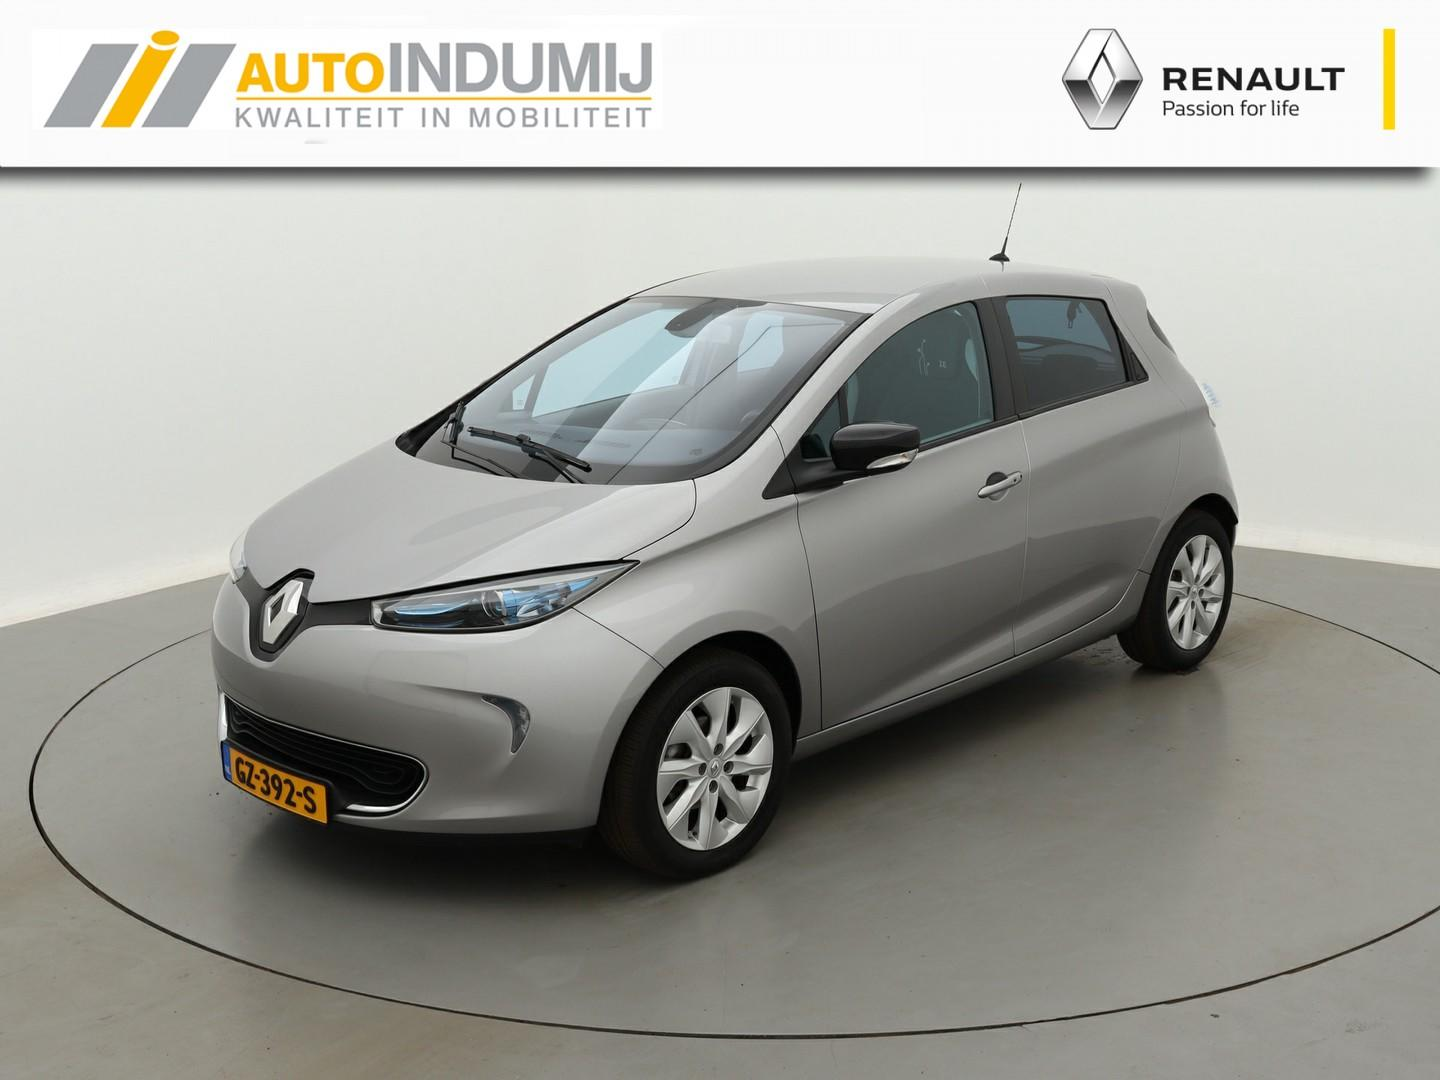 Renault Zoe Q210 zen quickcharge 40 kwh(!!) (ex accu) €2.000,- subsidie!! / grote accu /